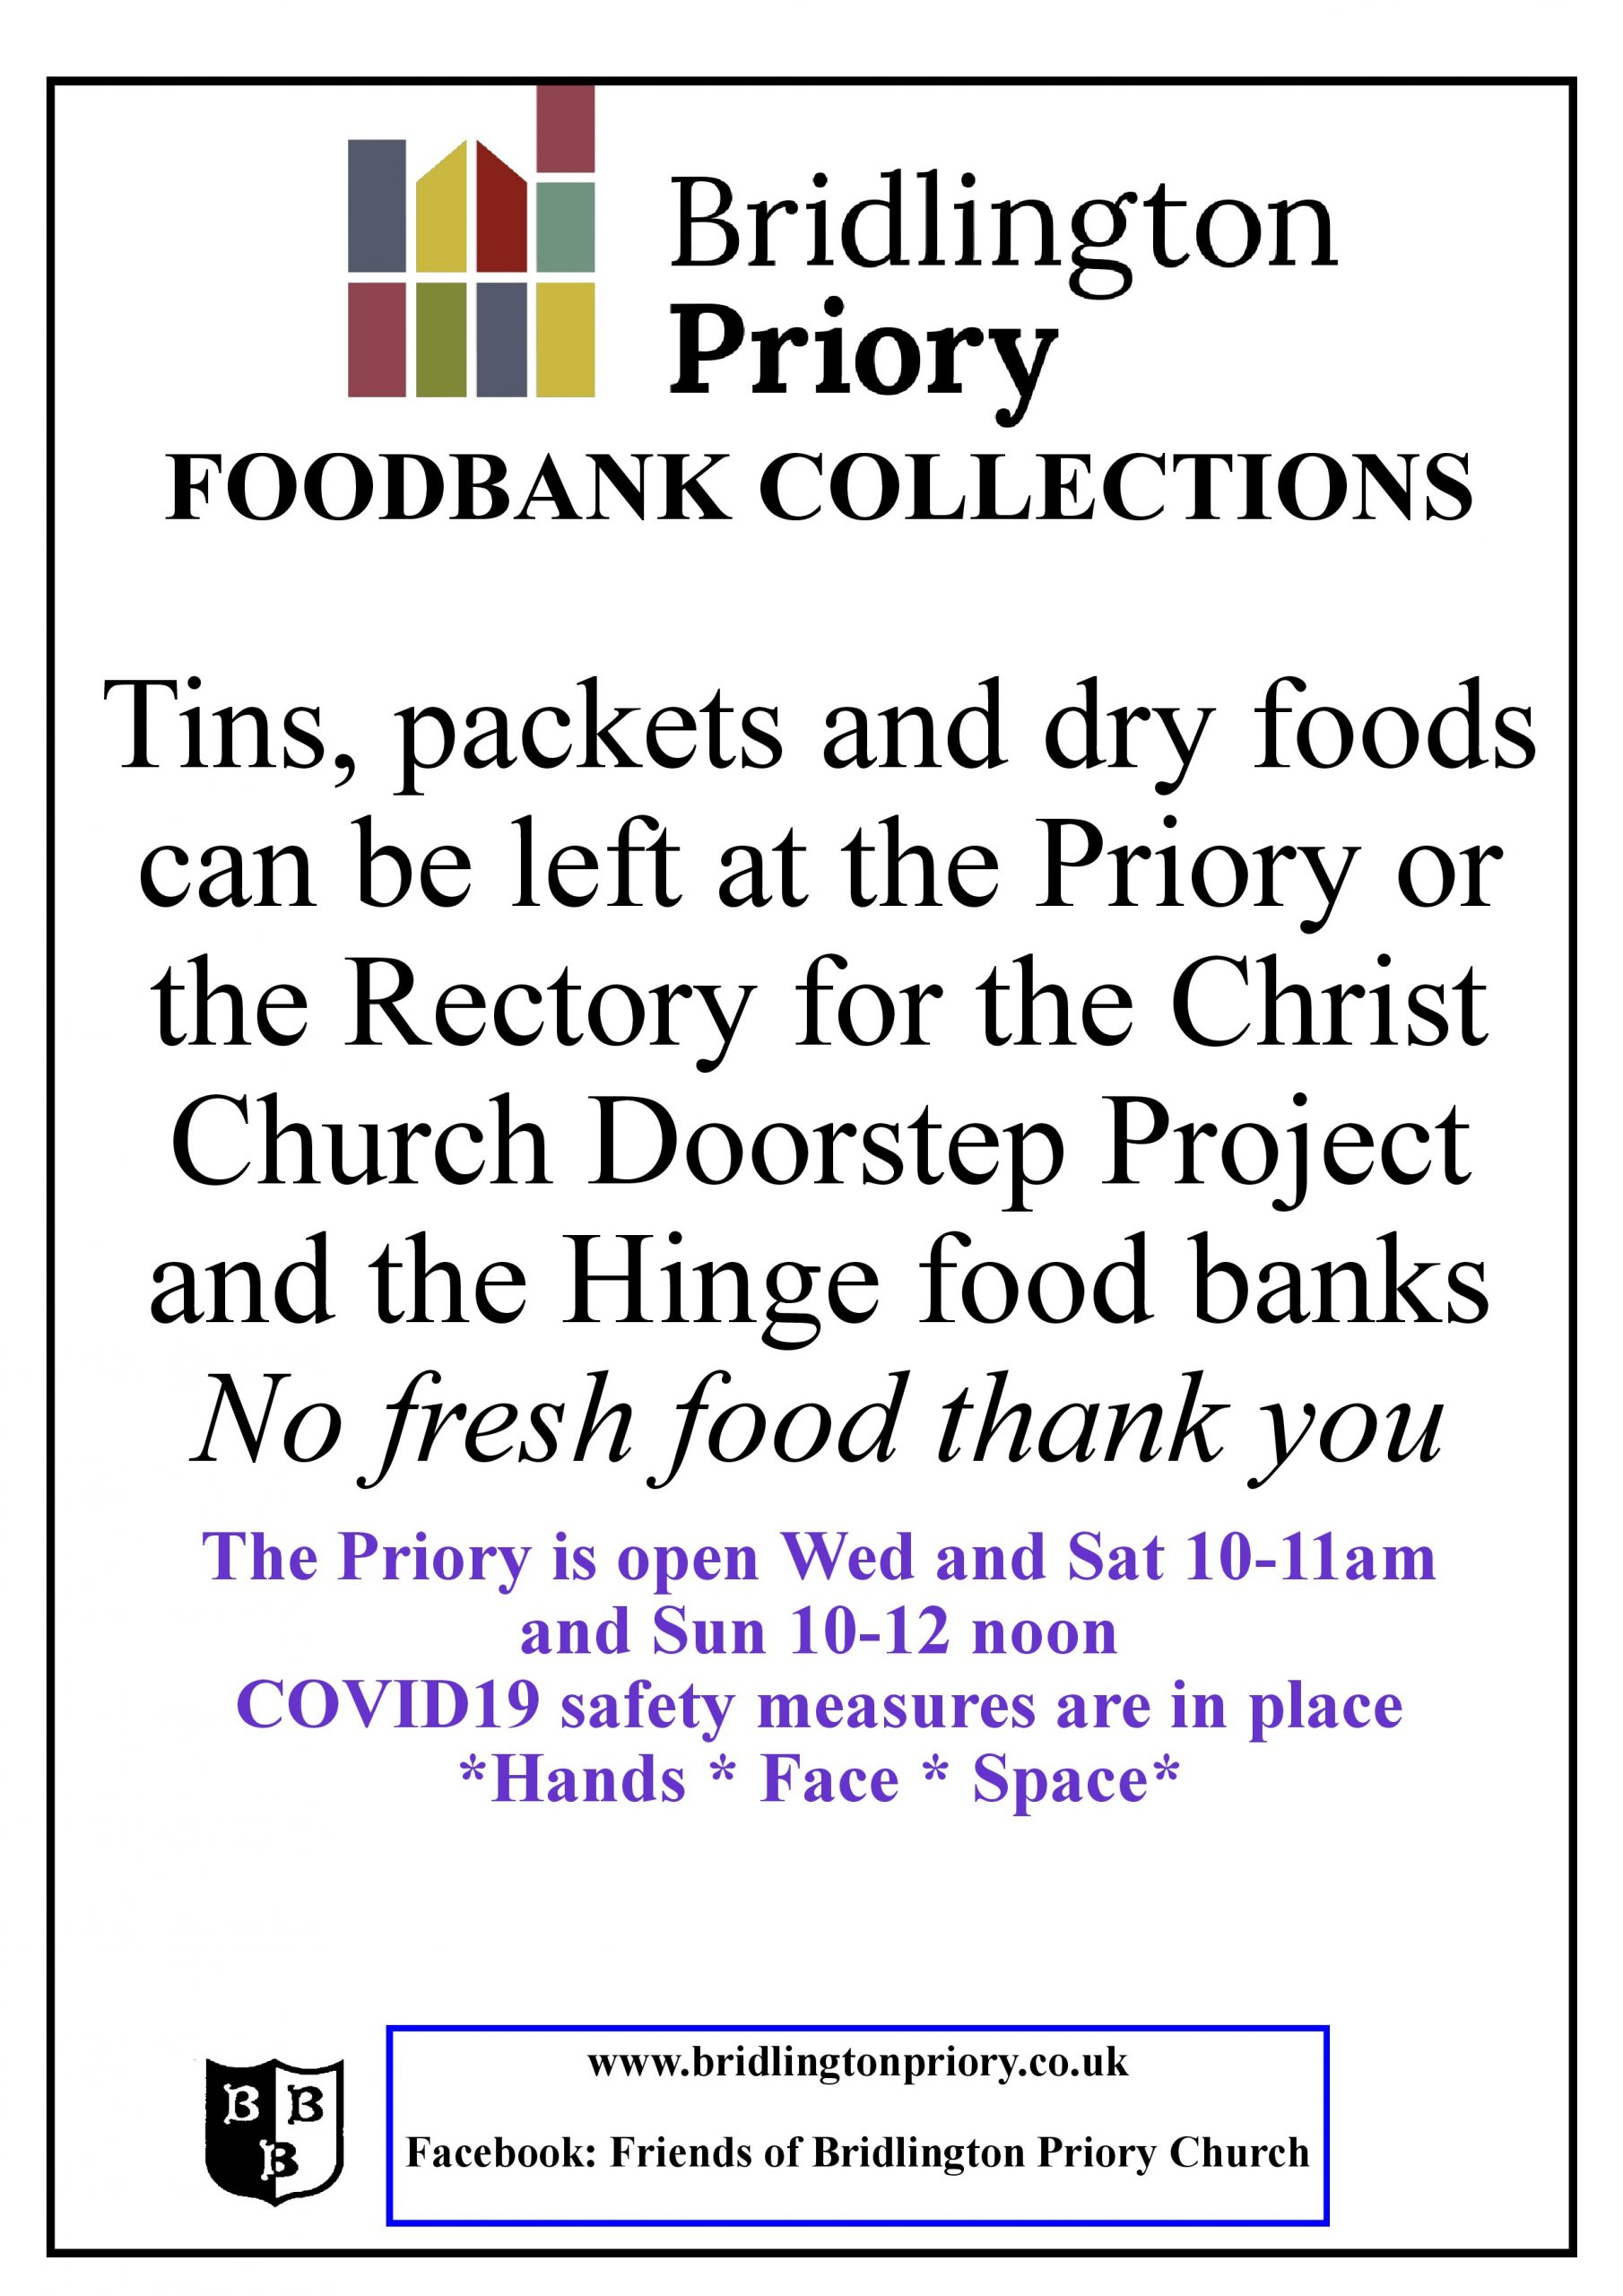 Food Bank Collections - Bridlington Priory